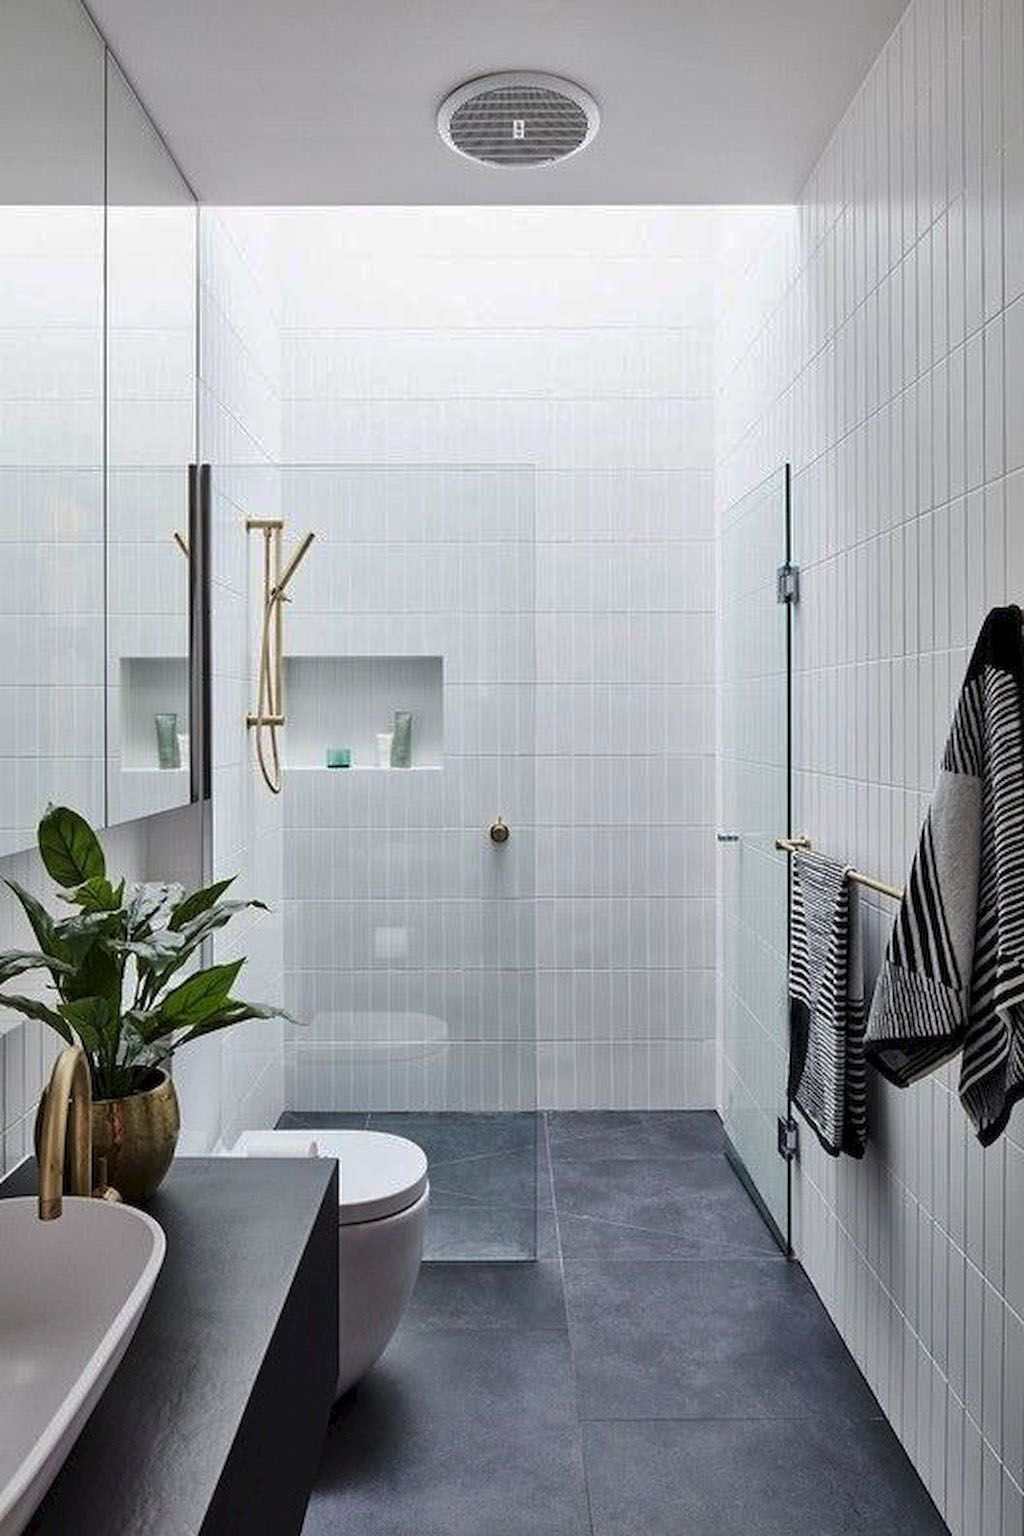 Outstanding small bathroom ideas australia that will blow ...